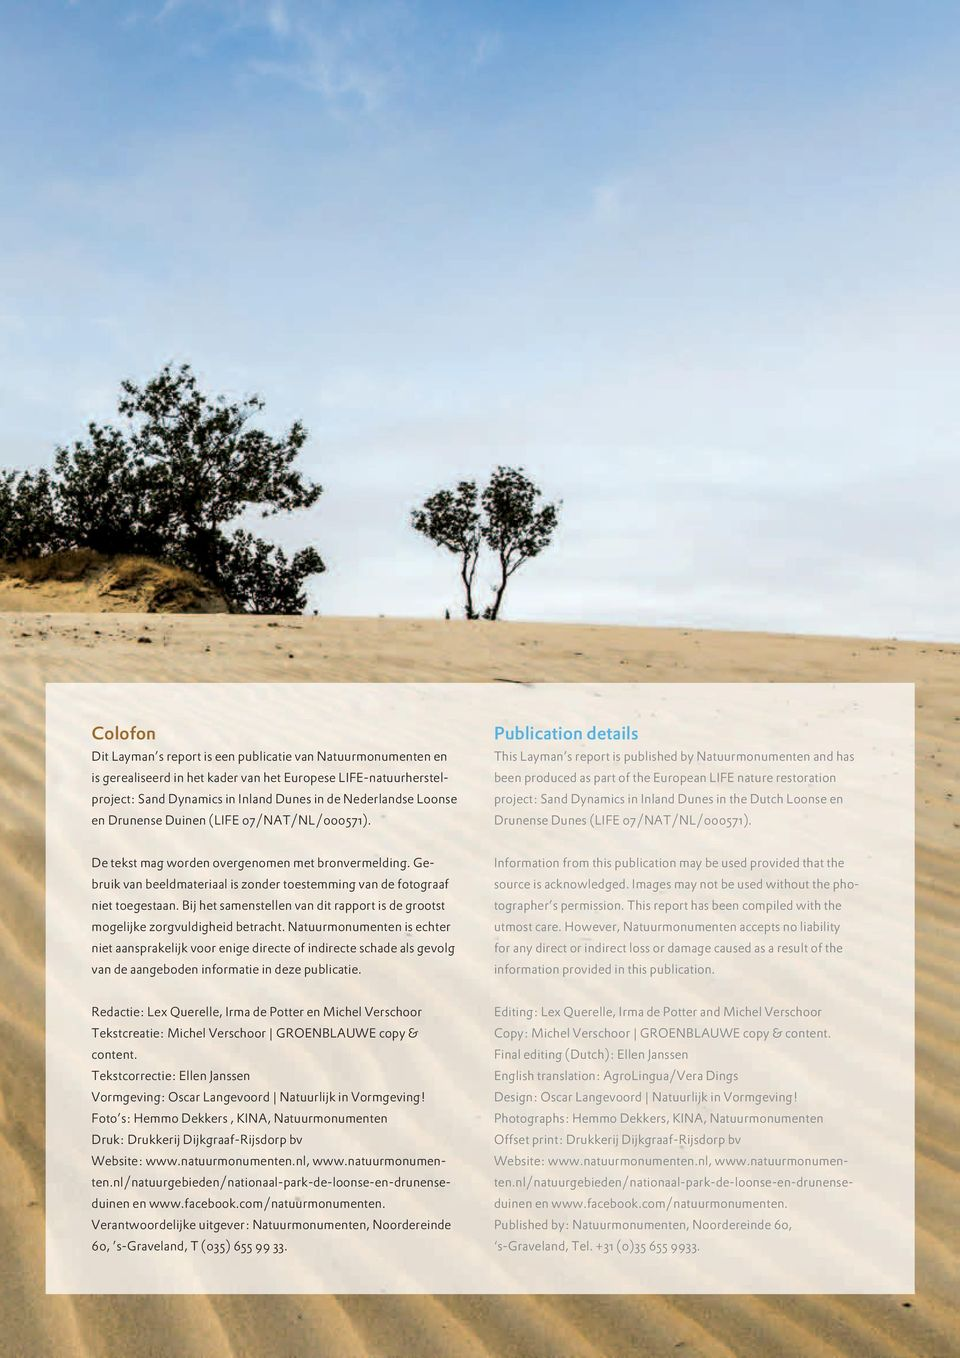 Publication details This Layman s report is published by Natuurmonumenten and has been produced as part of the European LIFE nature restoration project: Sand Dynamics in Inland Dunes in the Dutch